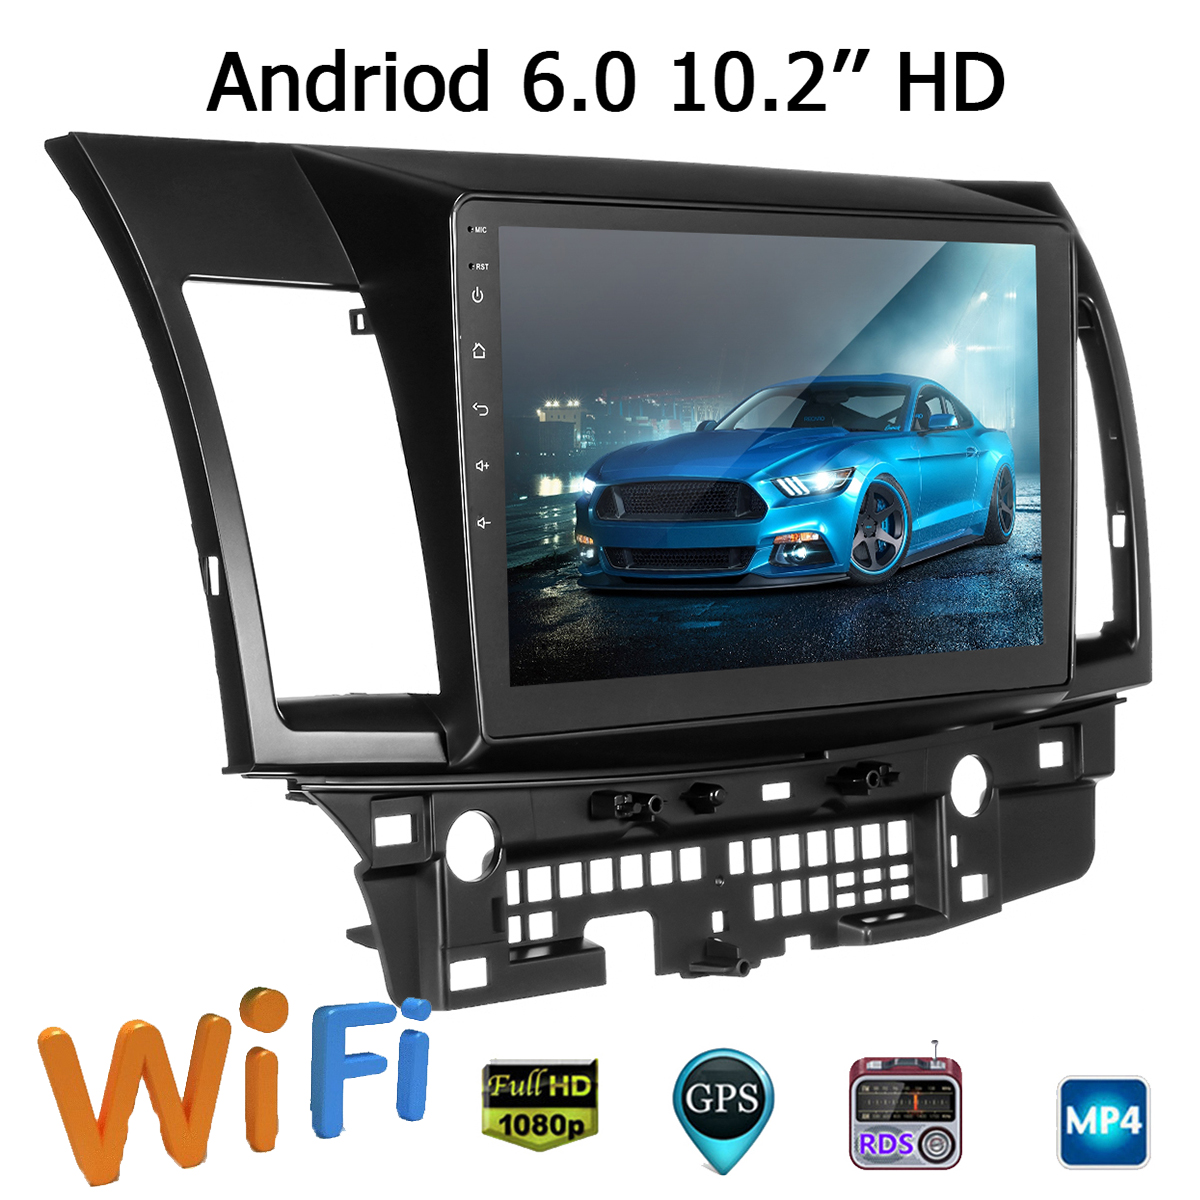 10.2 Inch 2Din for Android 6.0 Car Stereo Radio MP5 Player IPS Quad Core 1+16G GPS Touch Screen Wifi Micro For Mitsubishi Lancer